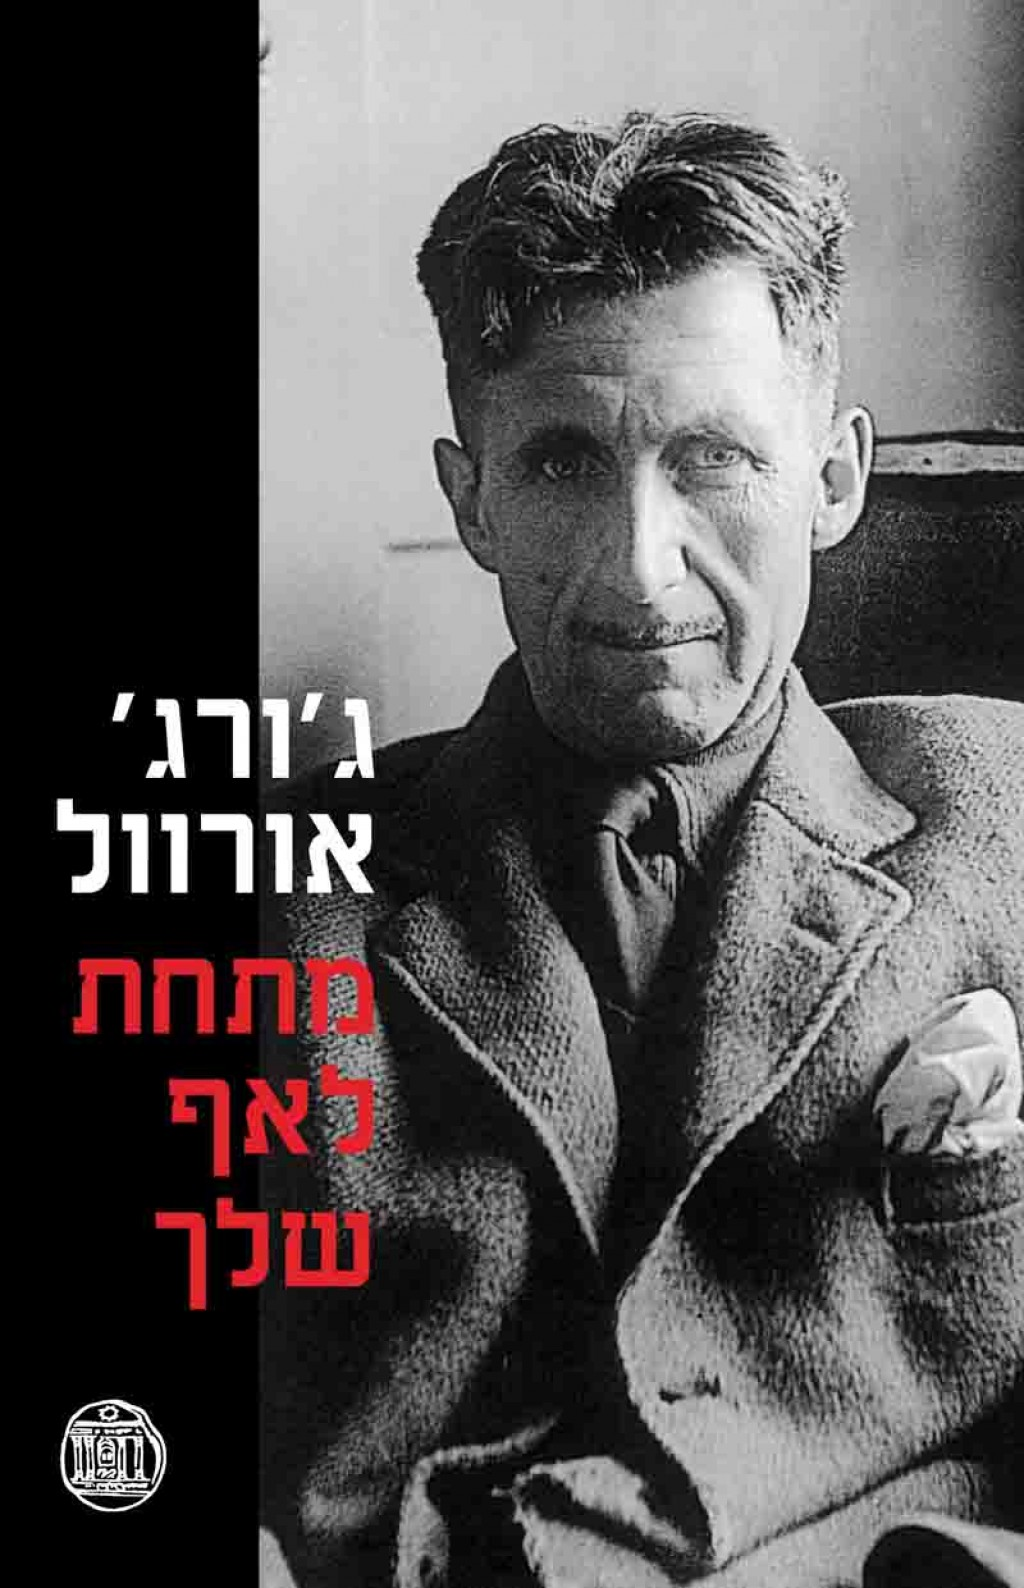 016 Mitahat Laaf Front George Orwell Essays Essay Frightening 1984 Summary Collected Pdf On Writing Large